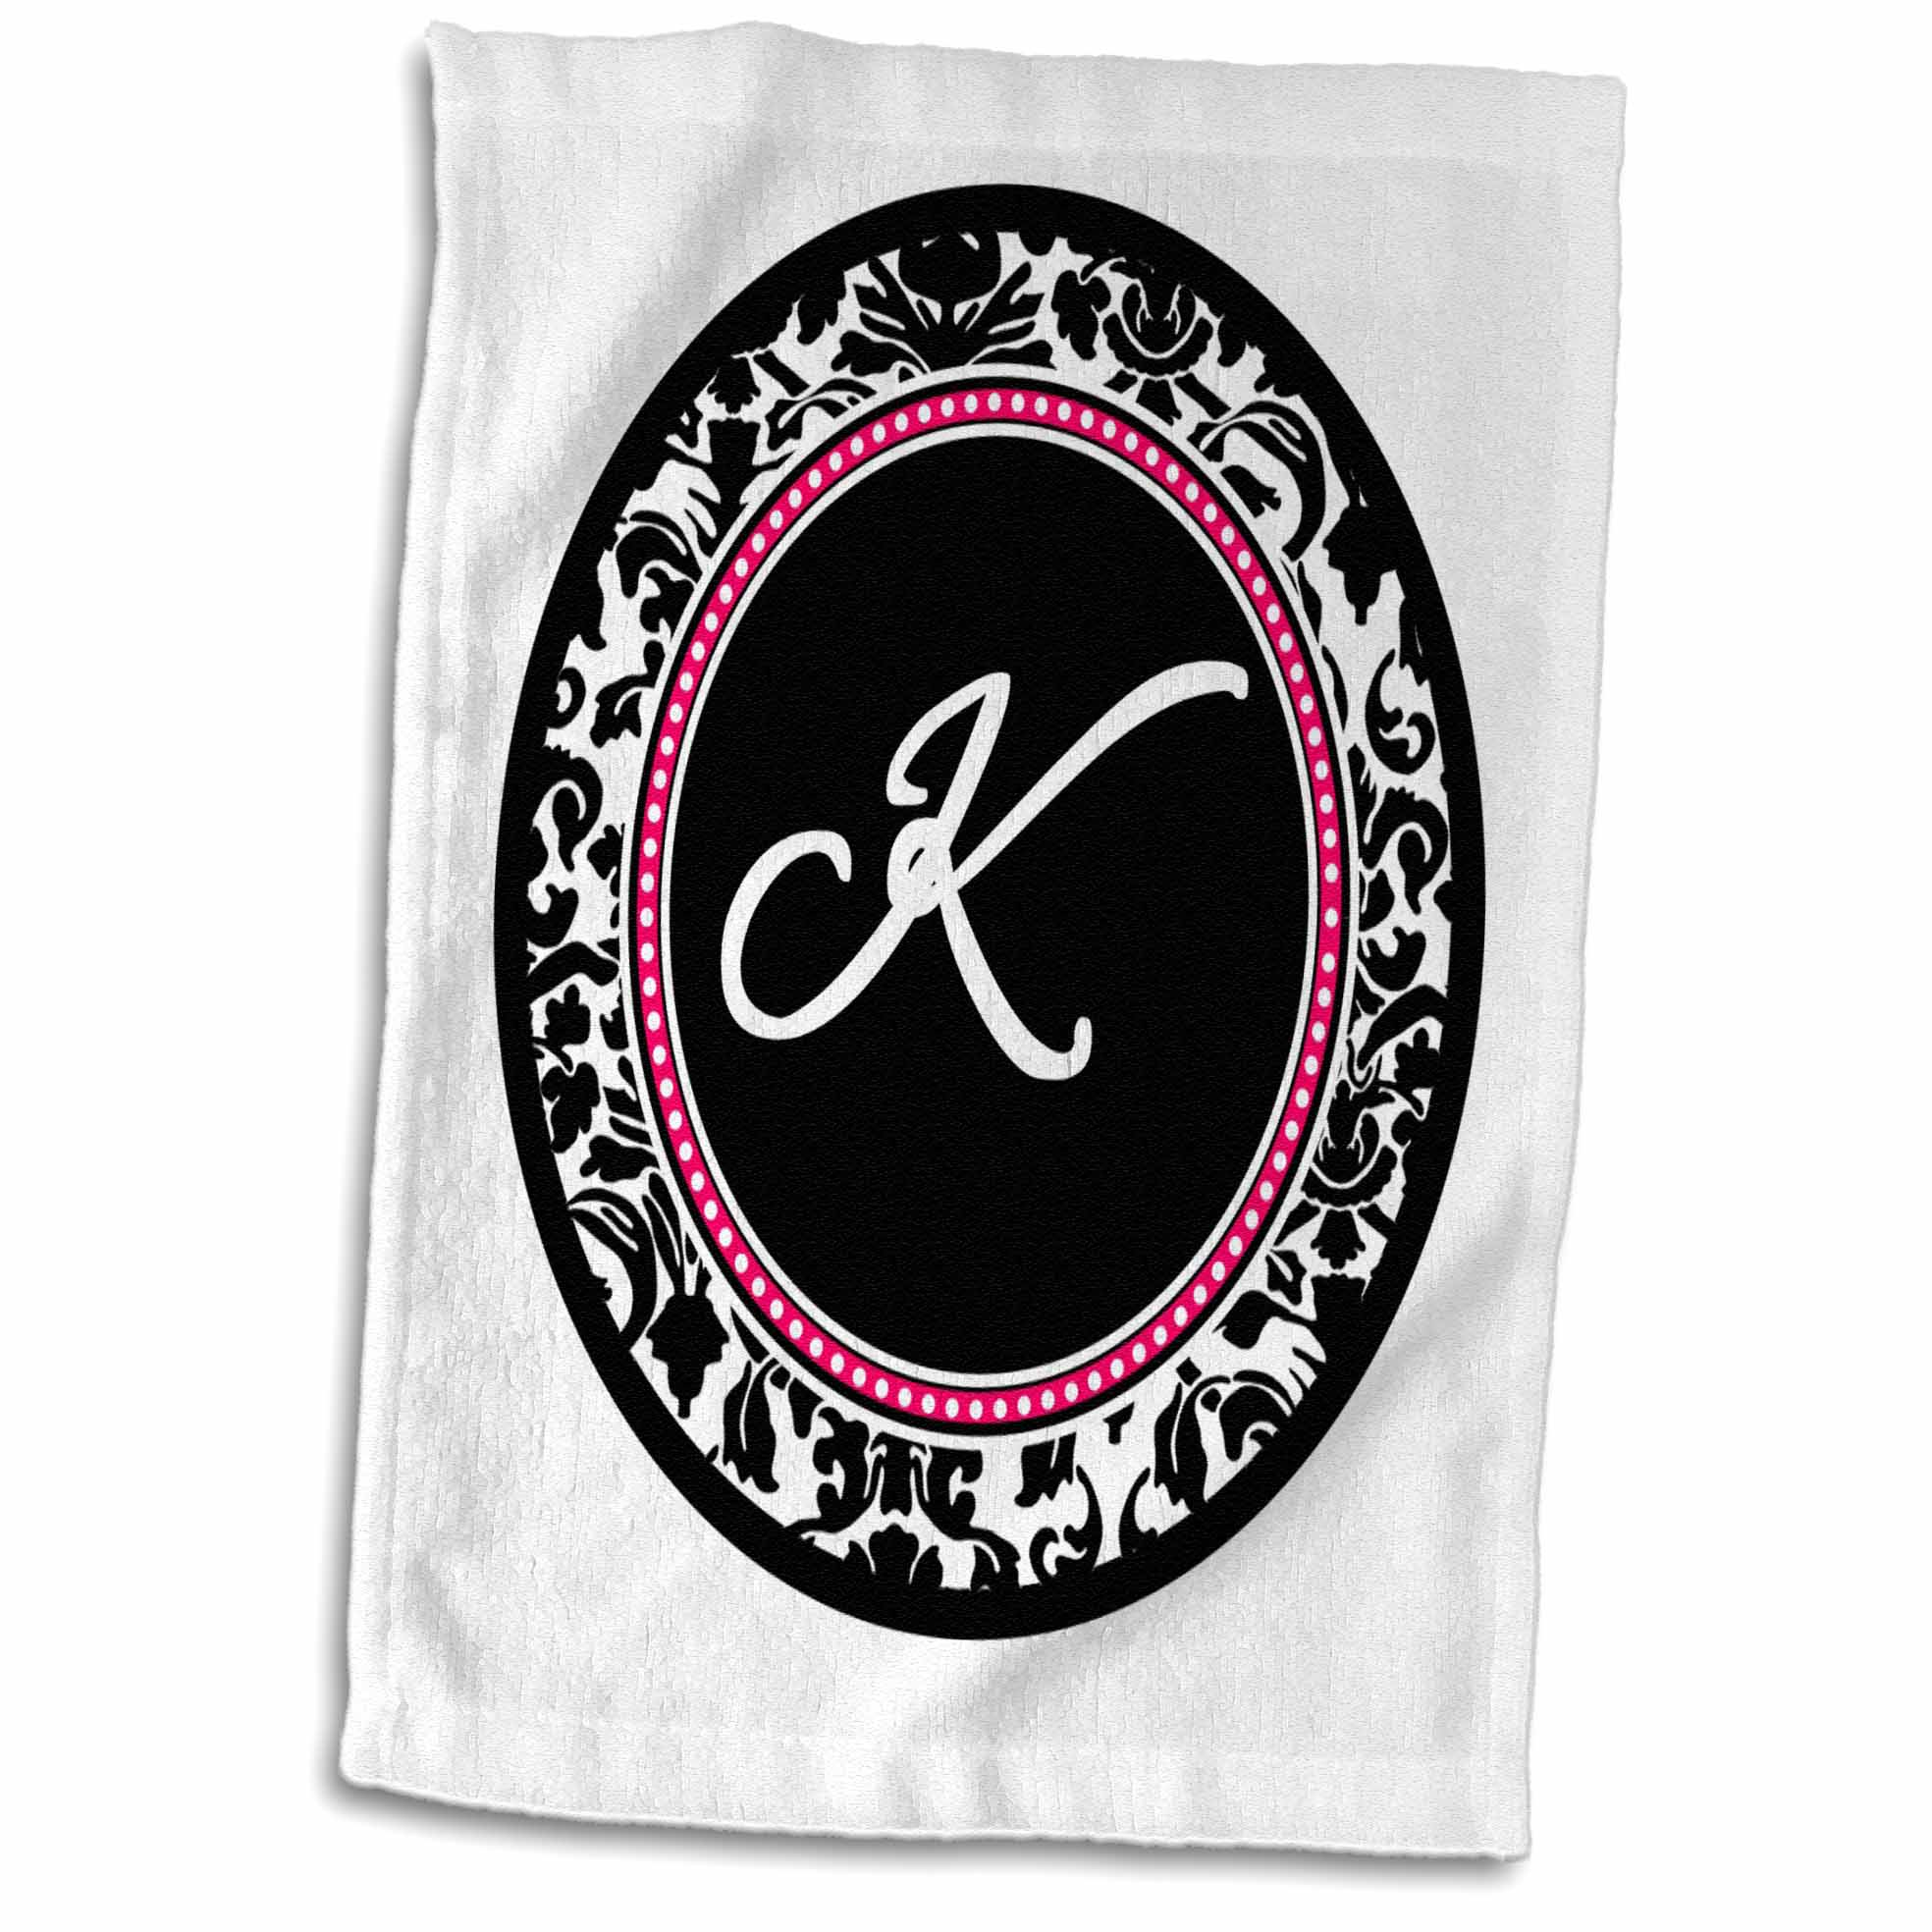 3dRose Letter K stylish monogrammed circle - girly personal initial personalized black damask with hot pink - Towel, 15 by 22-inch